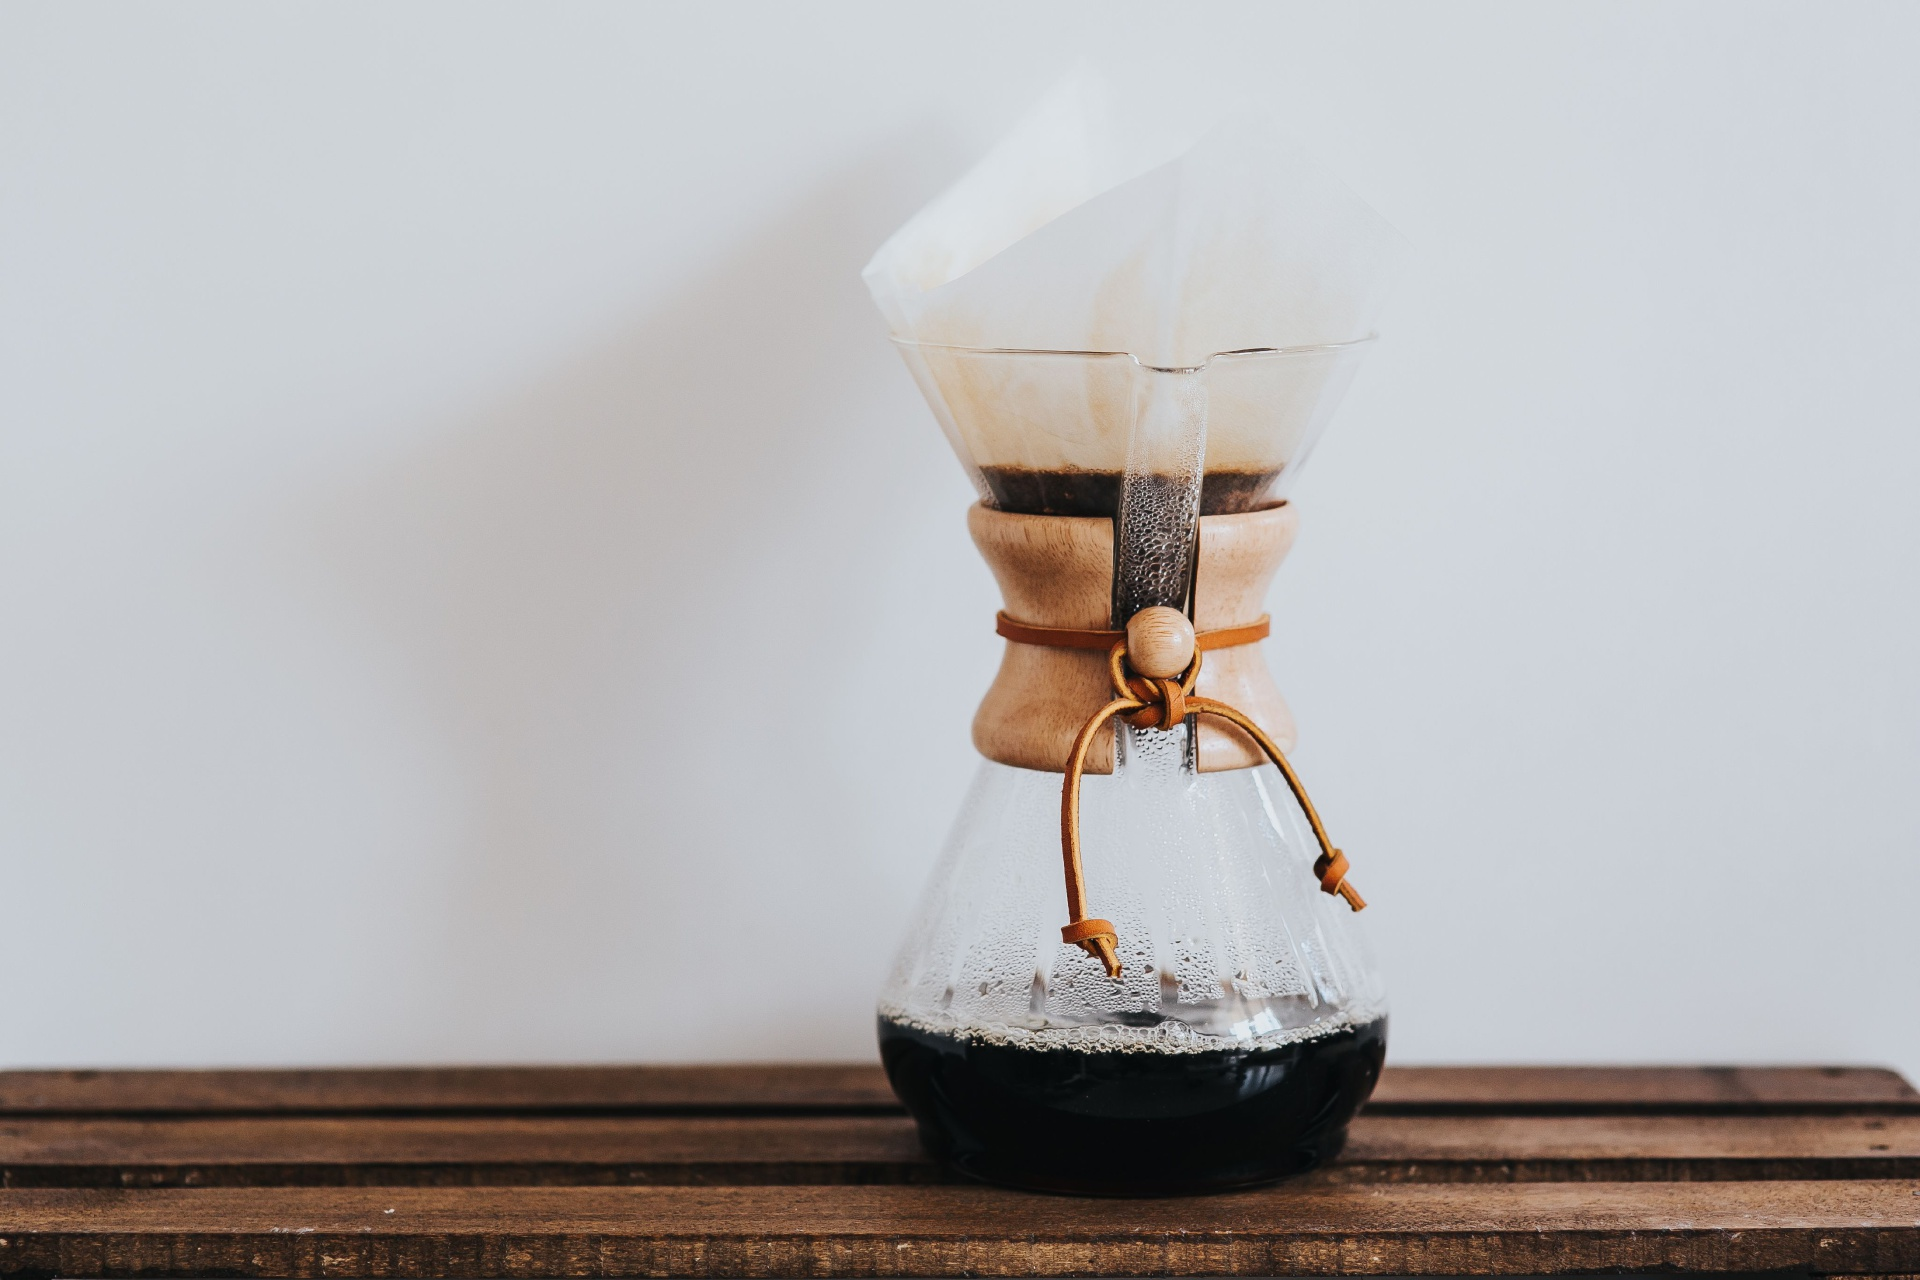 https://addressrealestate.com/media/images/blogs/24/2/b_kaboompics-pouring-hot-water-in-chemex.jpg